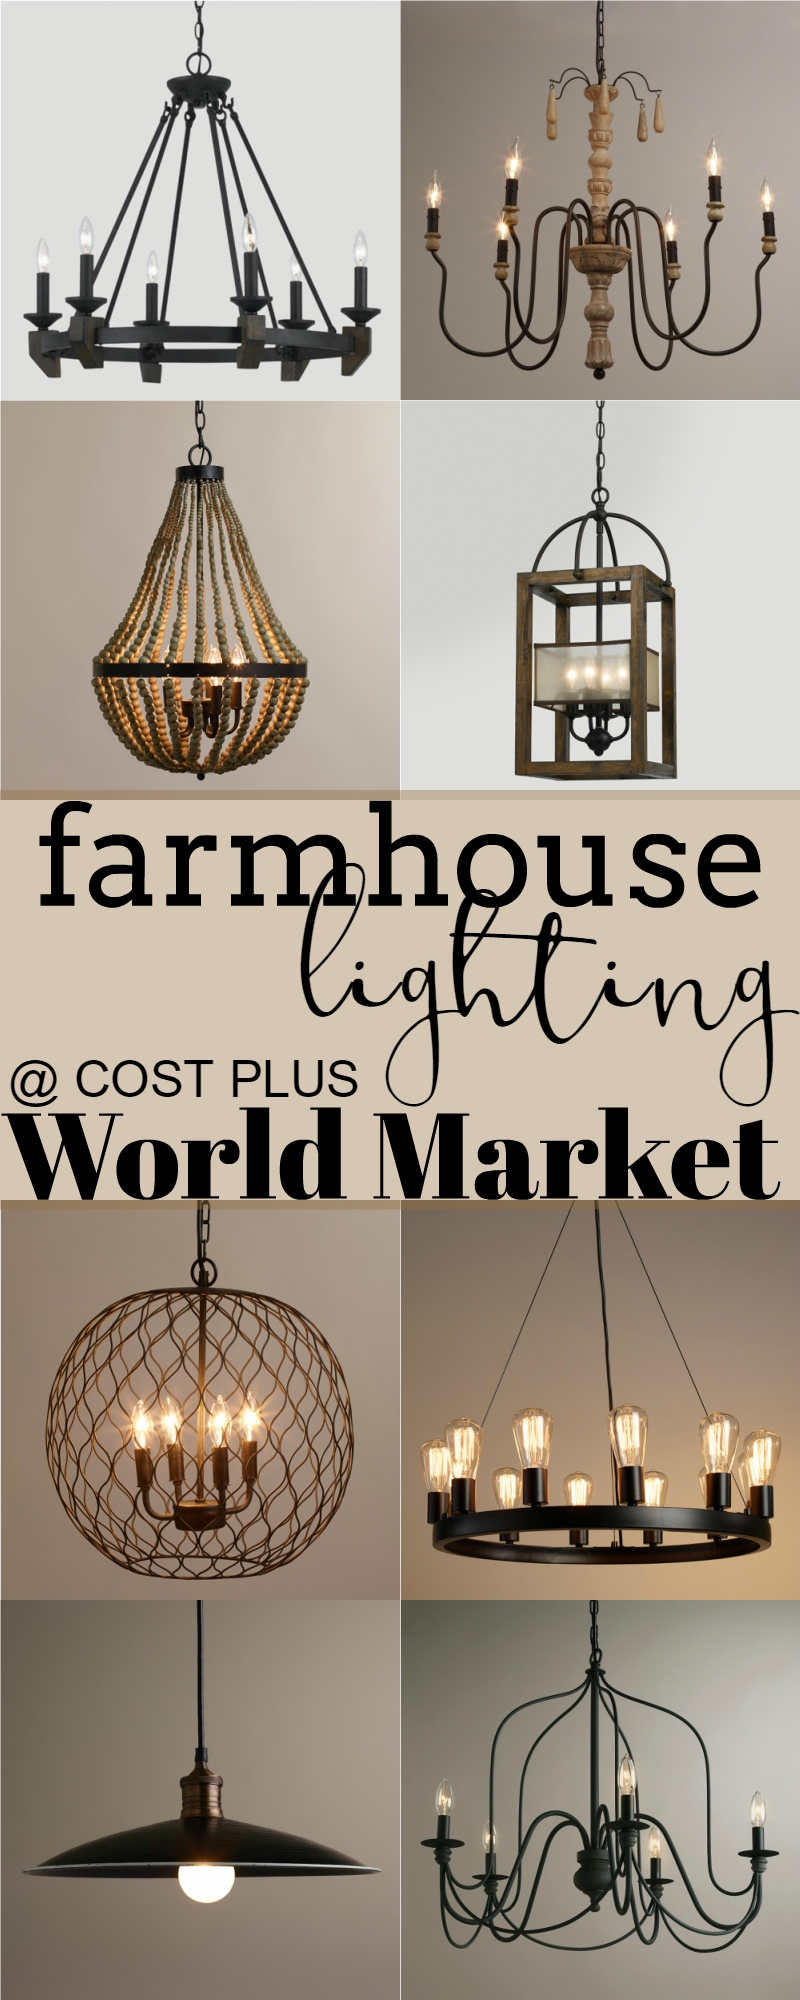 Farmhouse Lighting At Cost Plus World Market Updated